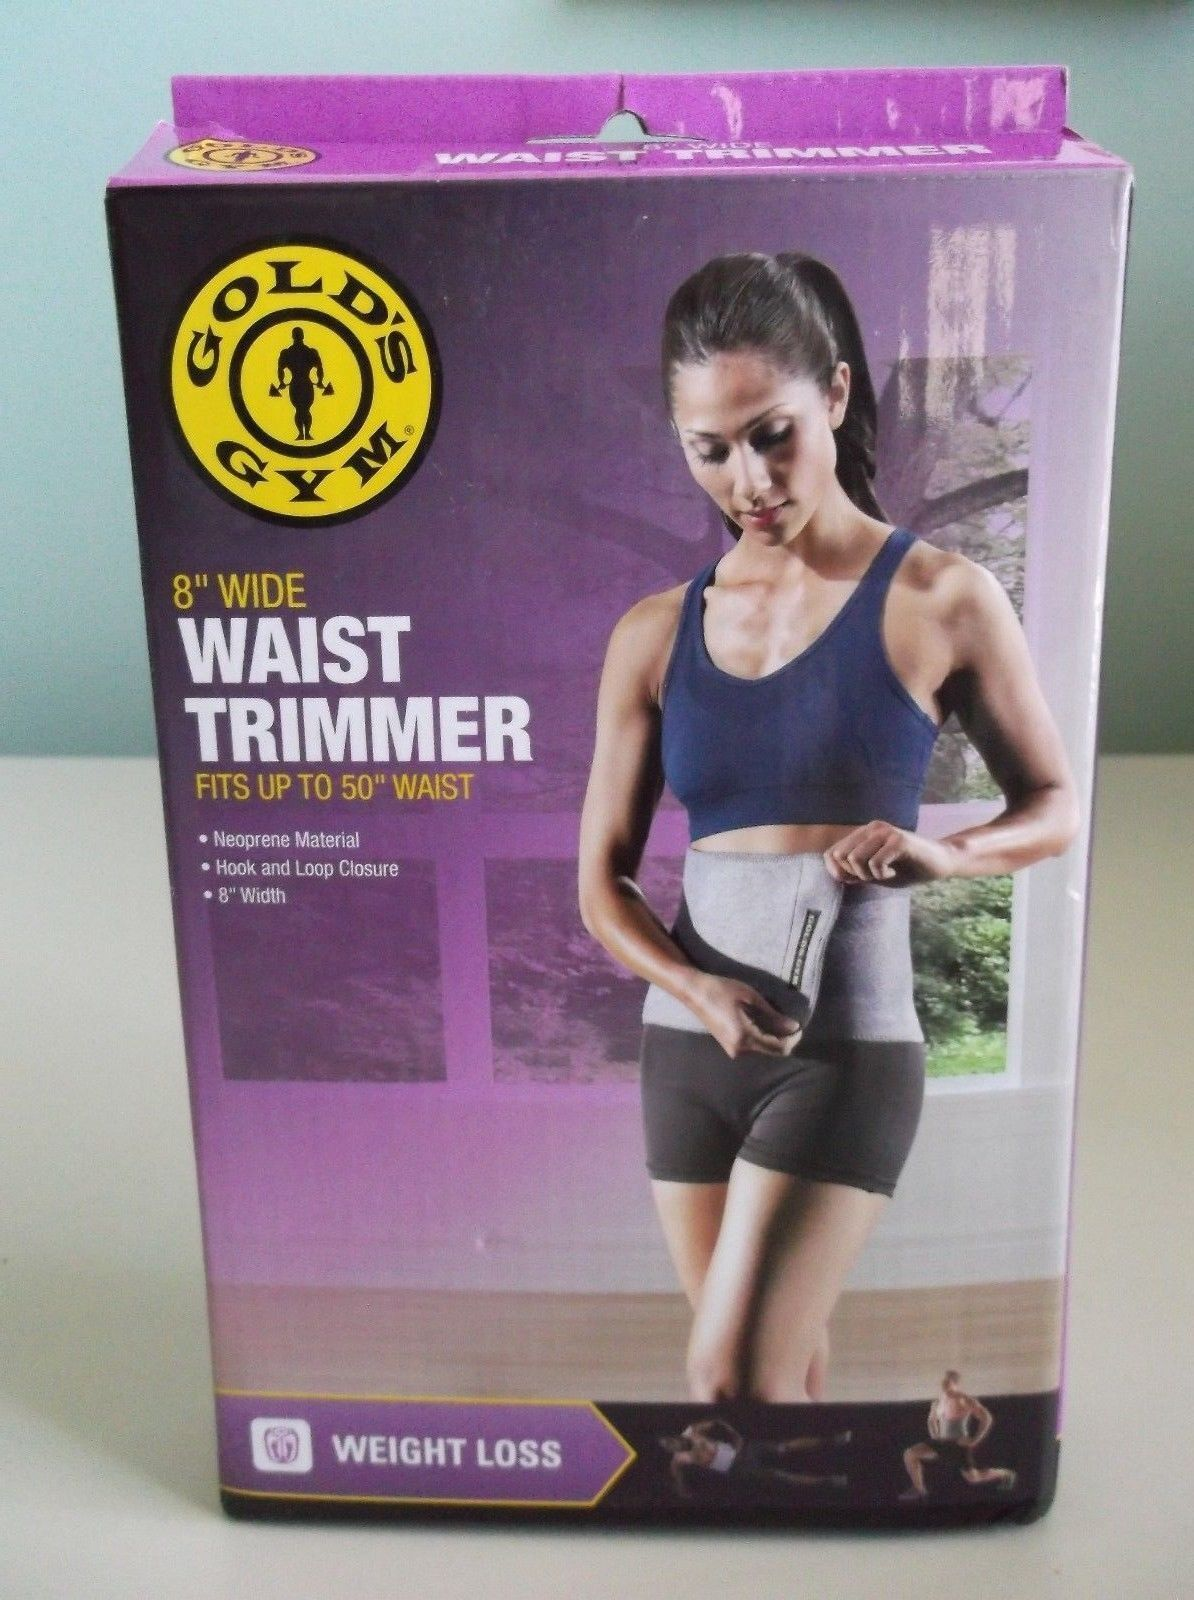 626b7a1ca9 Golds Gym Waist Trimmer Belt - Adjustable Size Fits Up To 50-Inch ...